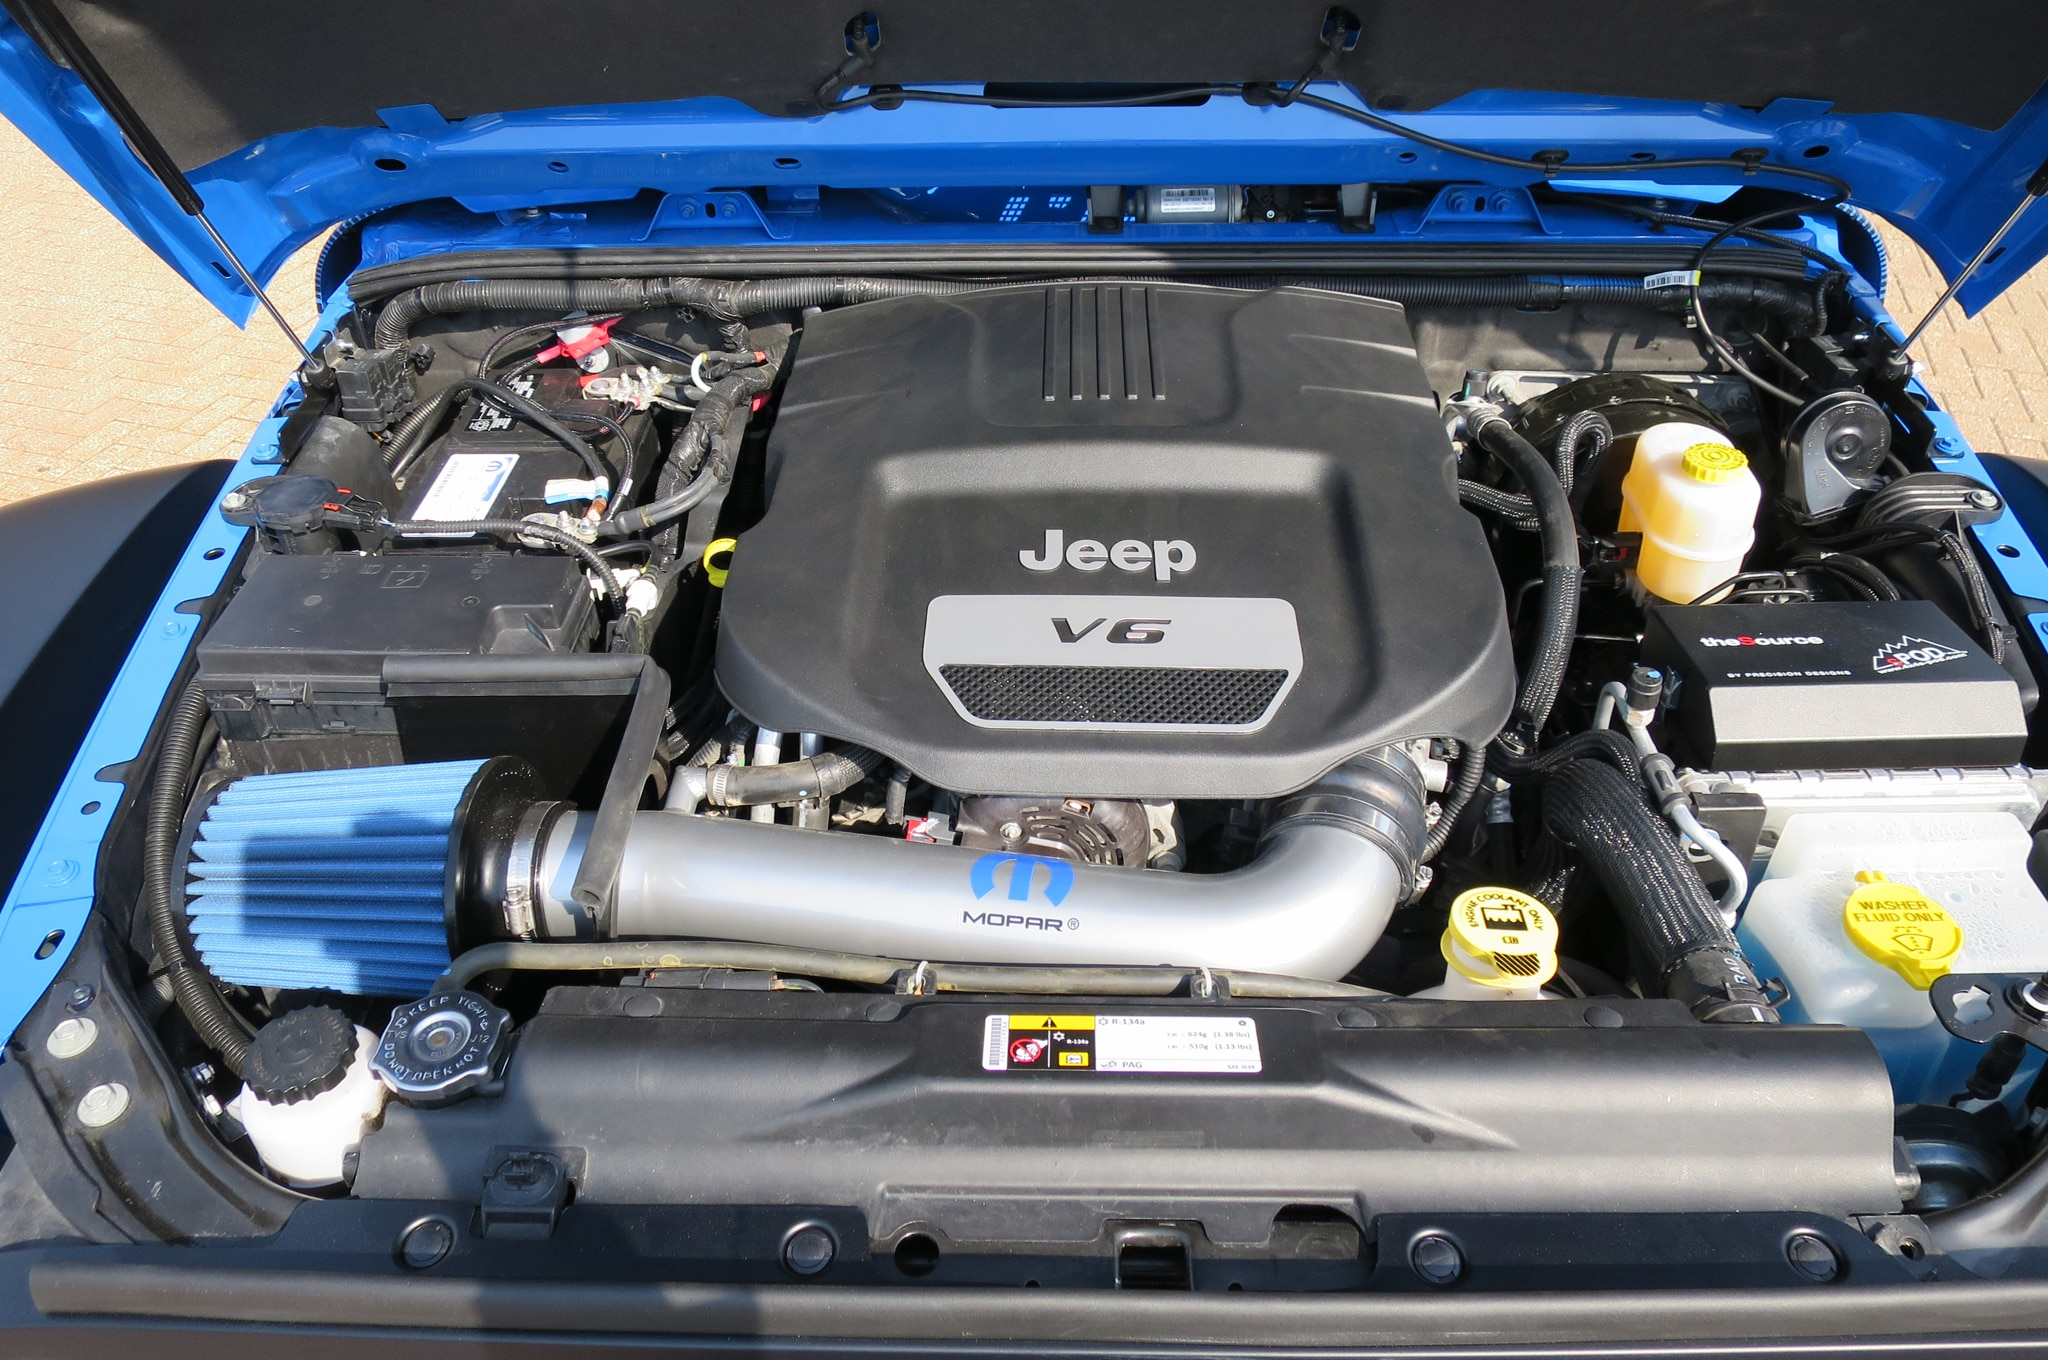 Jeep Wrangler Maximum Performance Concept engine